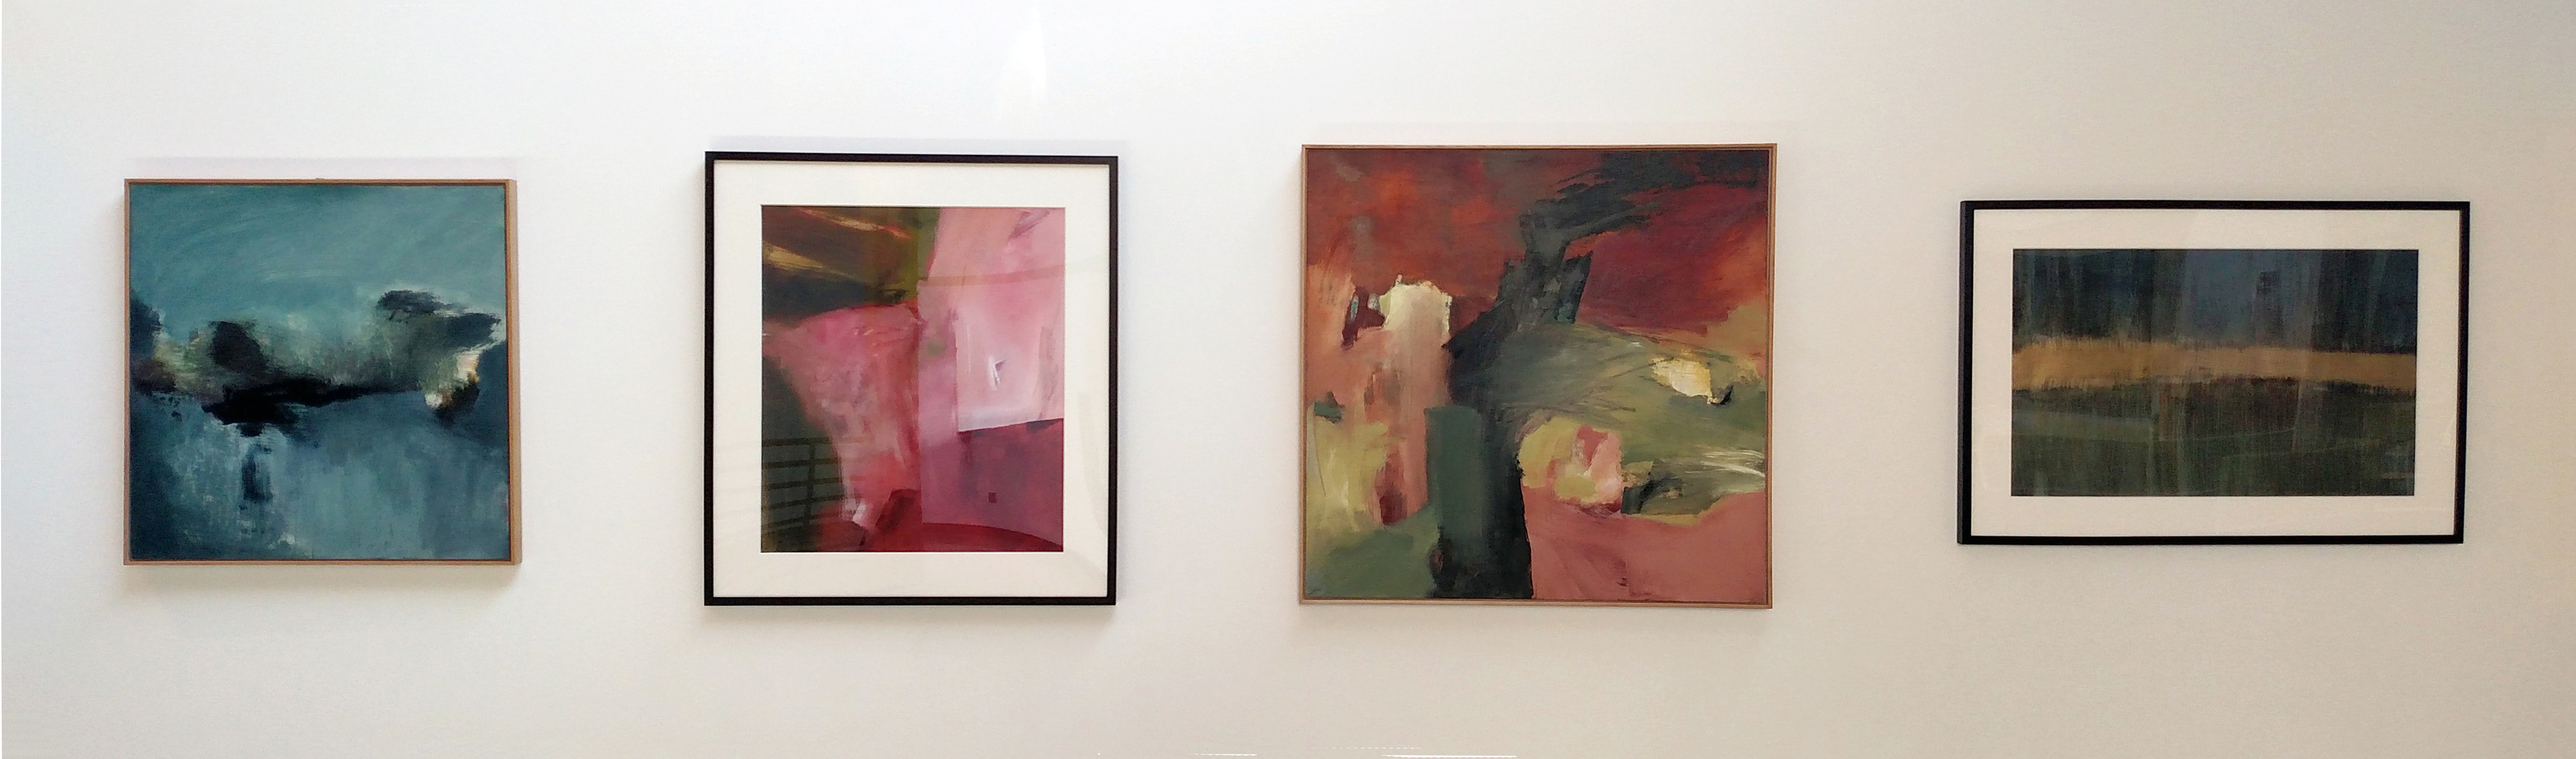 """""""Glacial Melt"""" (2015), """"Crimson Fields"""" (2014), """"Sequoia"""" (2016), and """"Shimmering Wetlands"""" (2014) by Becky Knold, located at the Evergreen State College. Curator Nathan Barnes selected these paintings for the recent renovation of Evergreen's Purce Lecture Hall in Olympia. These artworks are part of the State Art Collection.Photo by ArtsWA."""